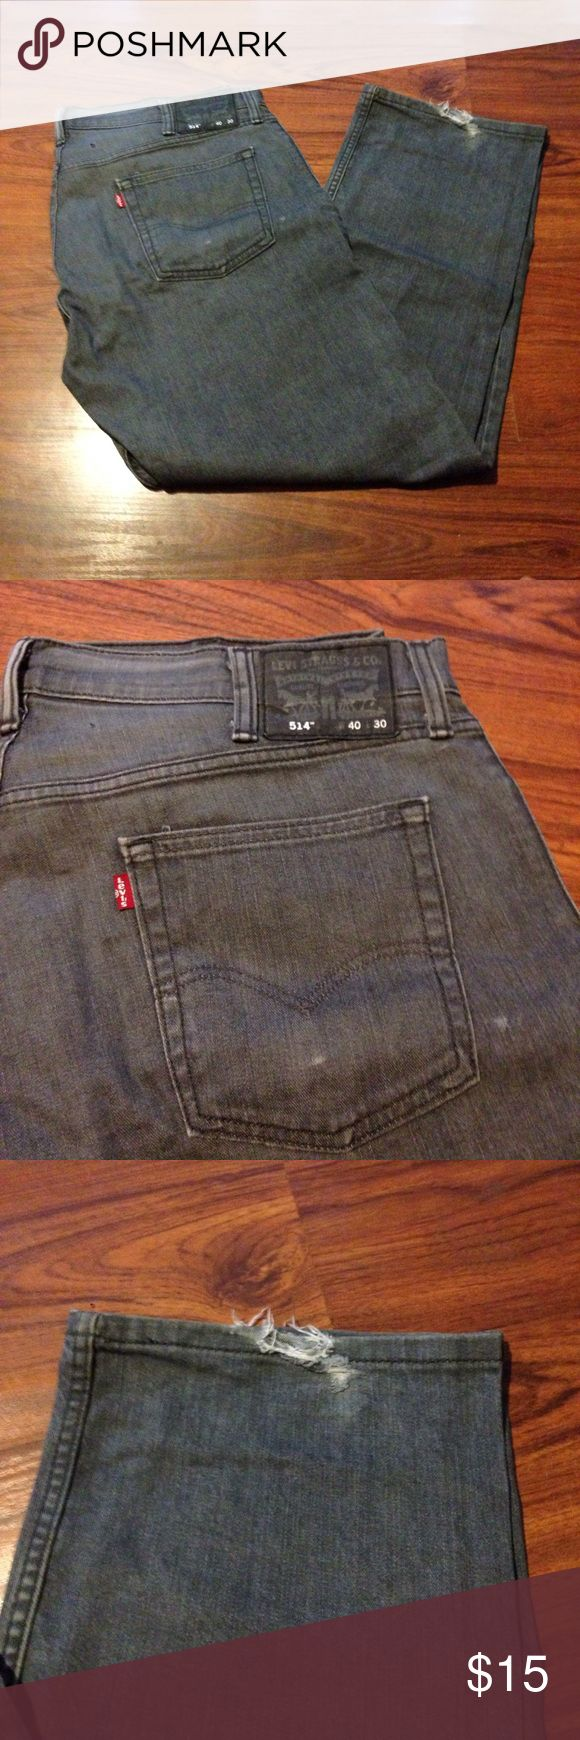 Levi's 514 40x30 black jeans grey jeans Some distressing. No staining. Grey black charcoal color. Levi's Jeans Relaxed